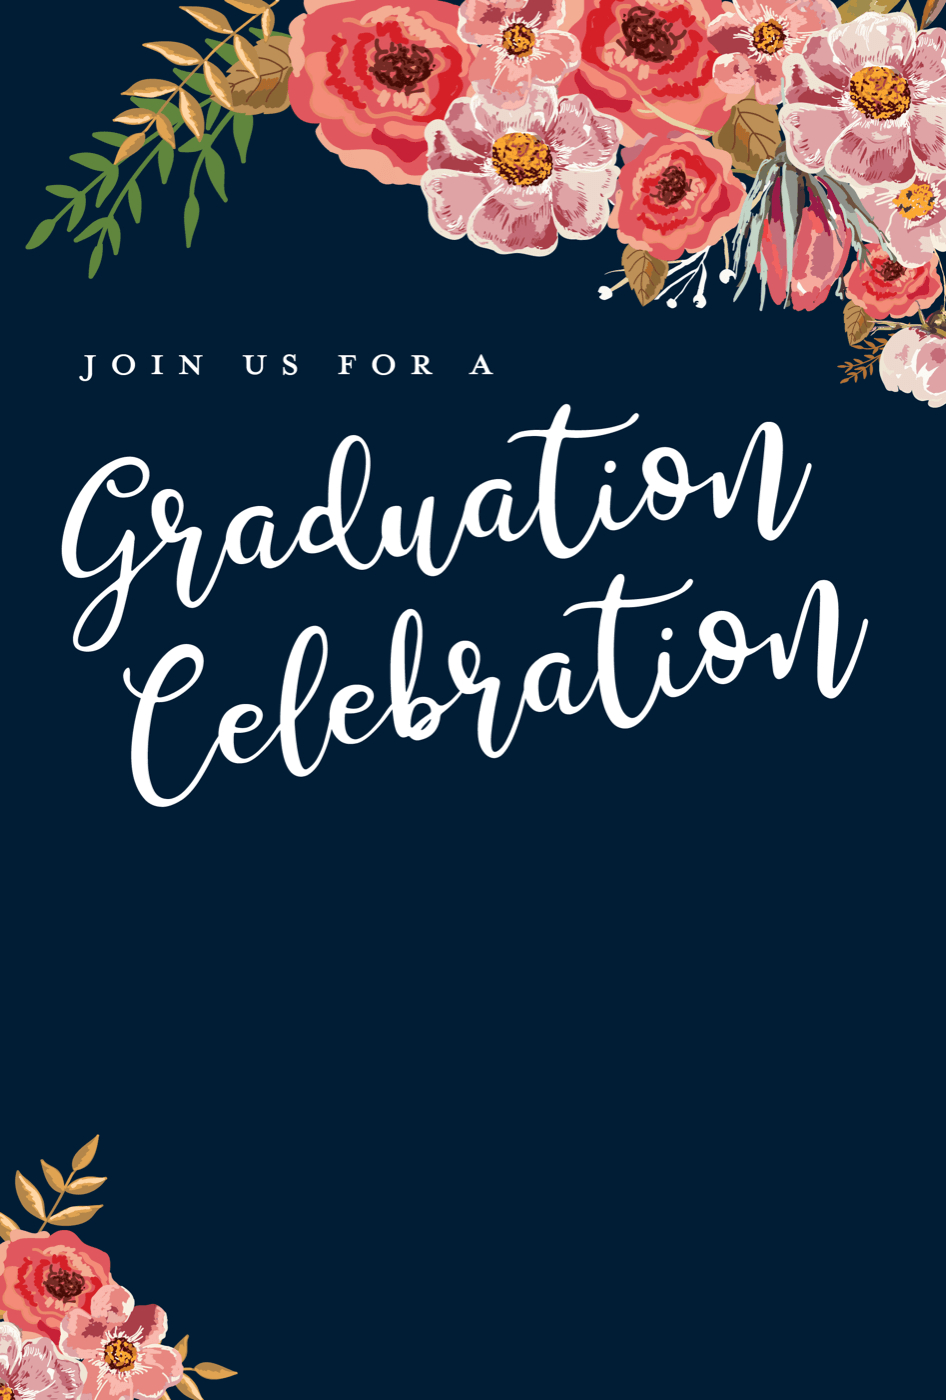 5 Editable Graduation Party Invitation Templates Tips Shutterfly in proportions 946 X 1400